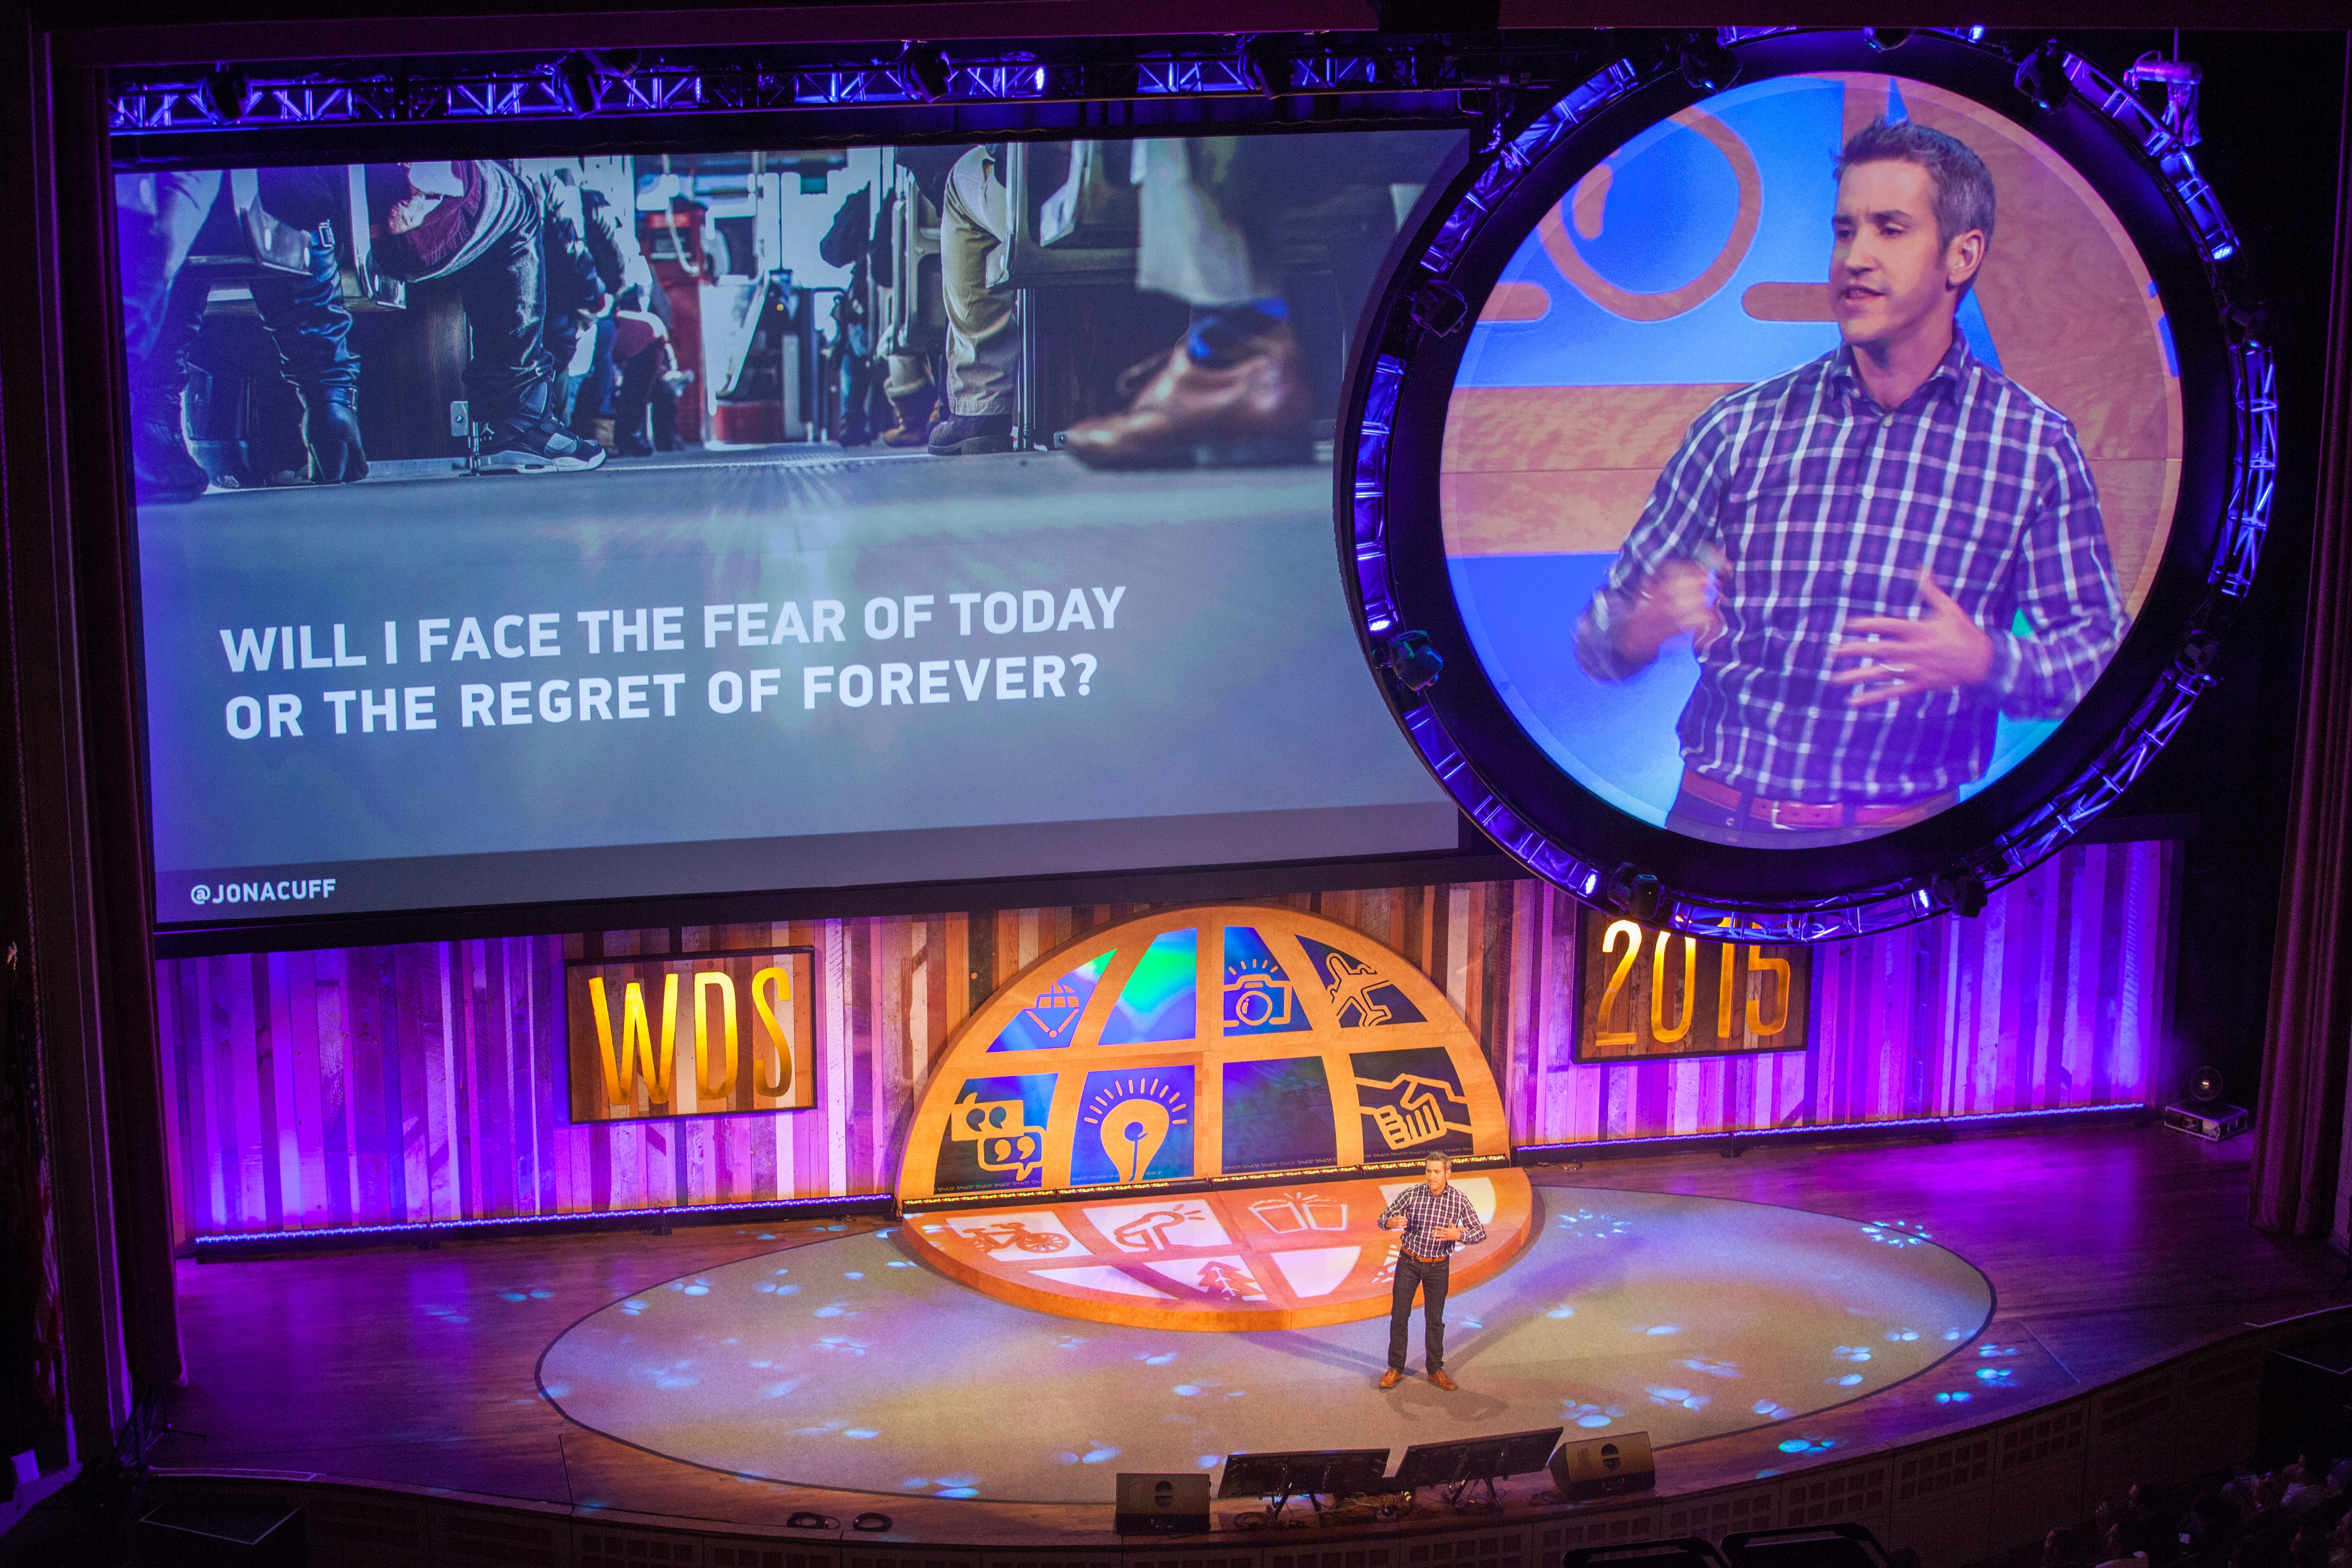 Who Were the Best 2015 World Domination Speakers? According to Haydee Montemayor from Love and Treasure